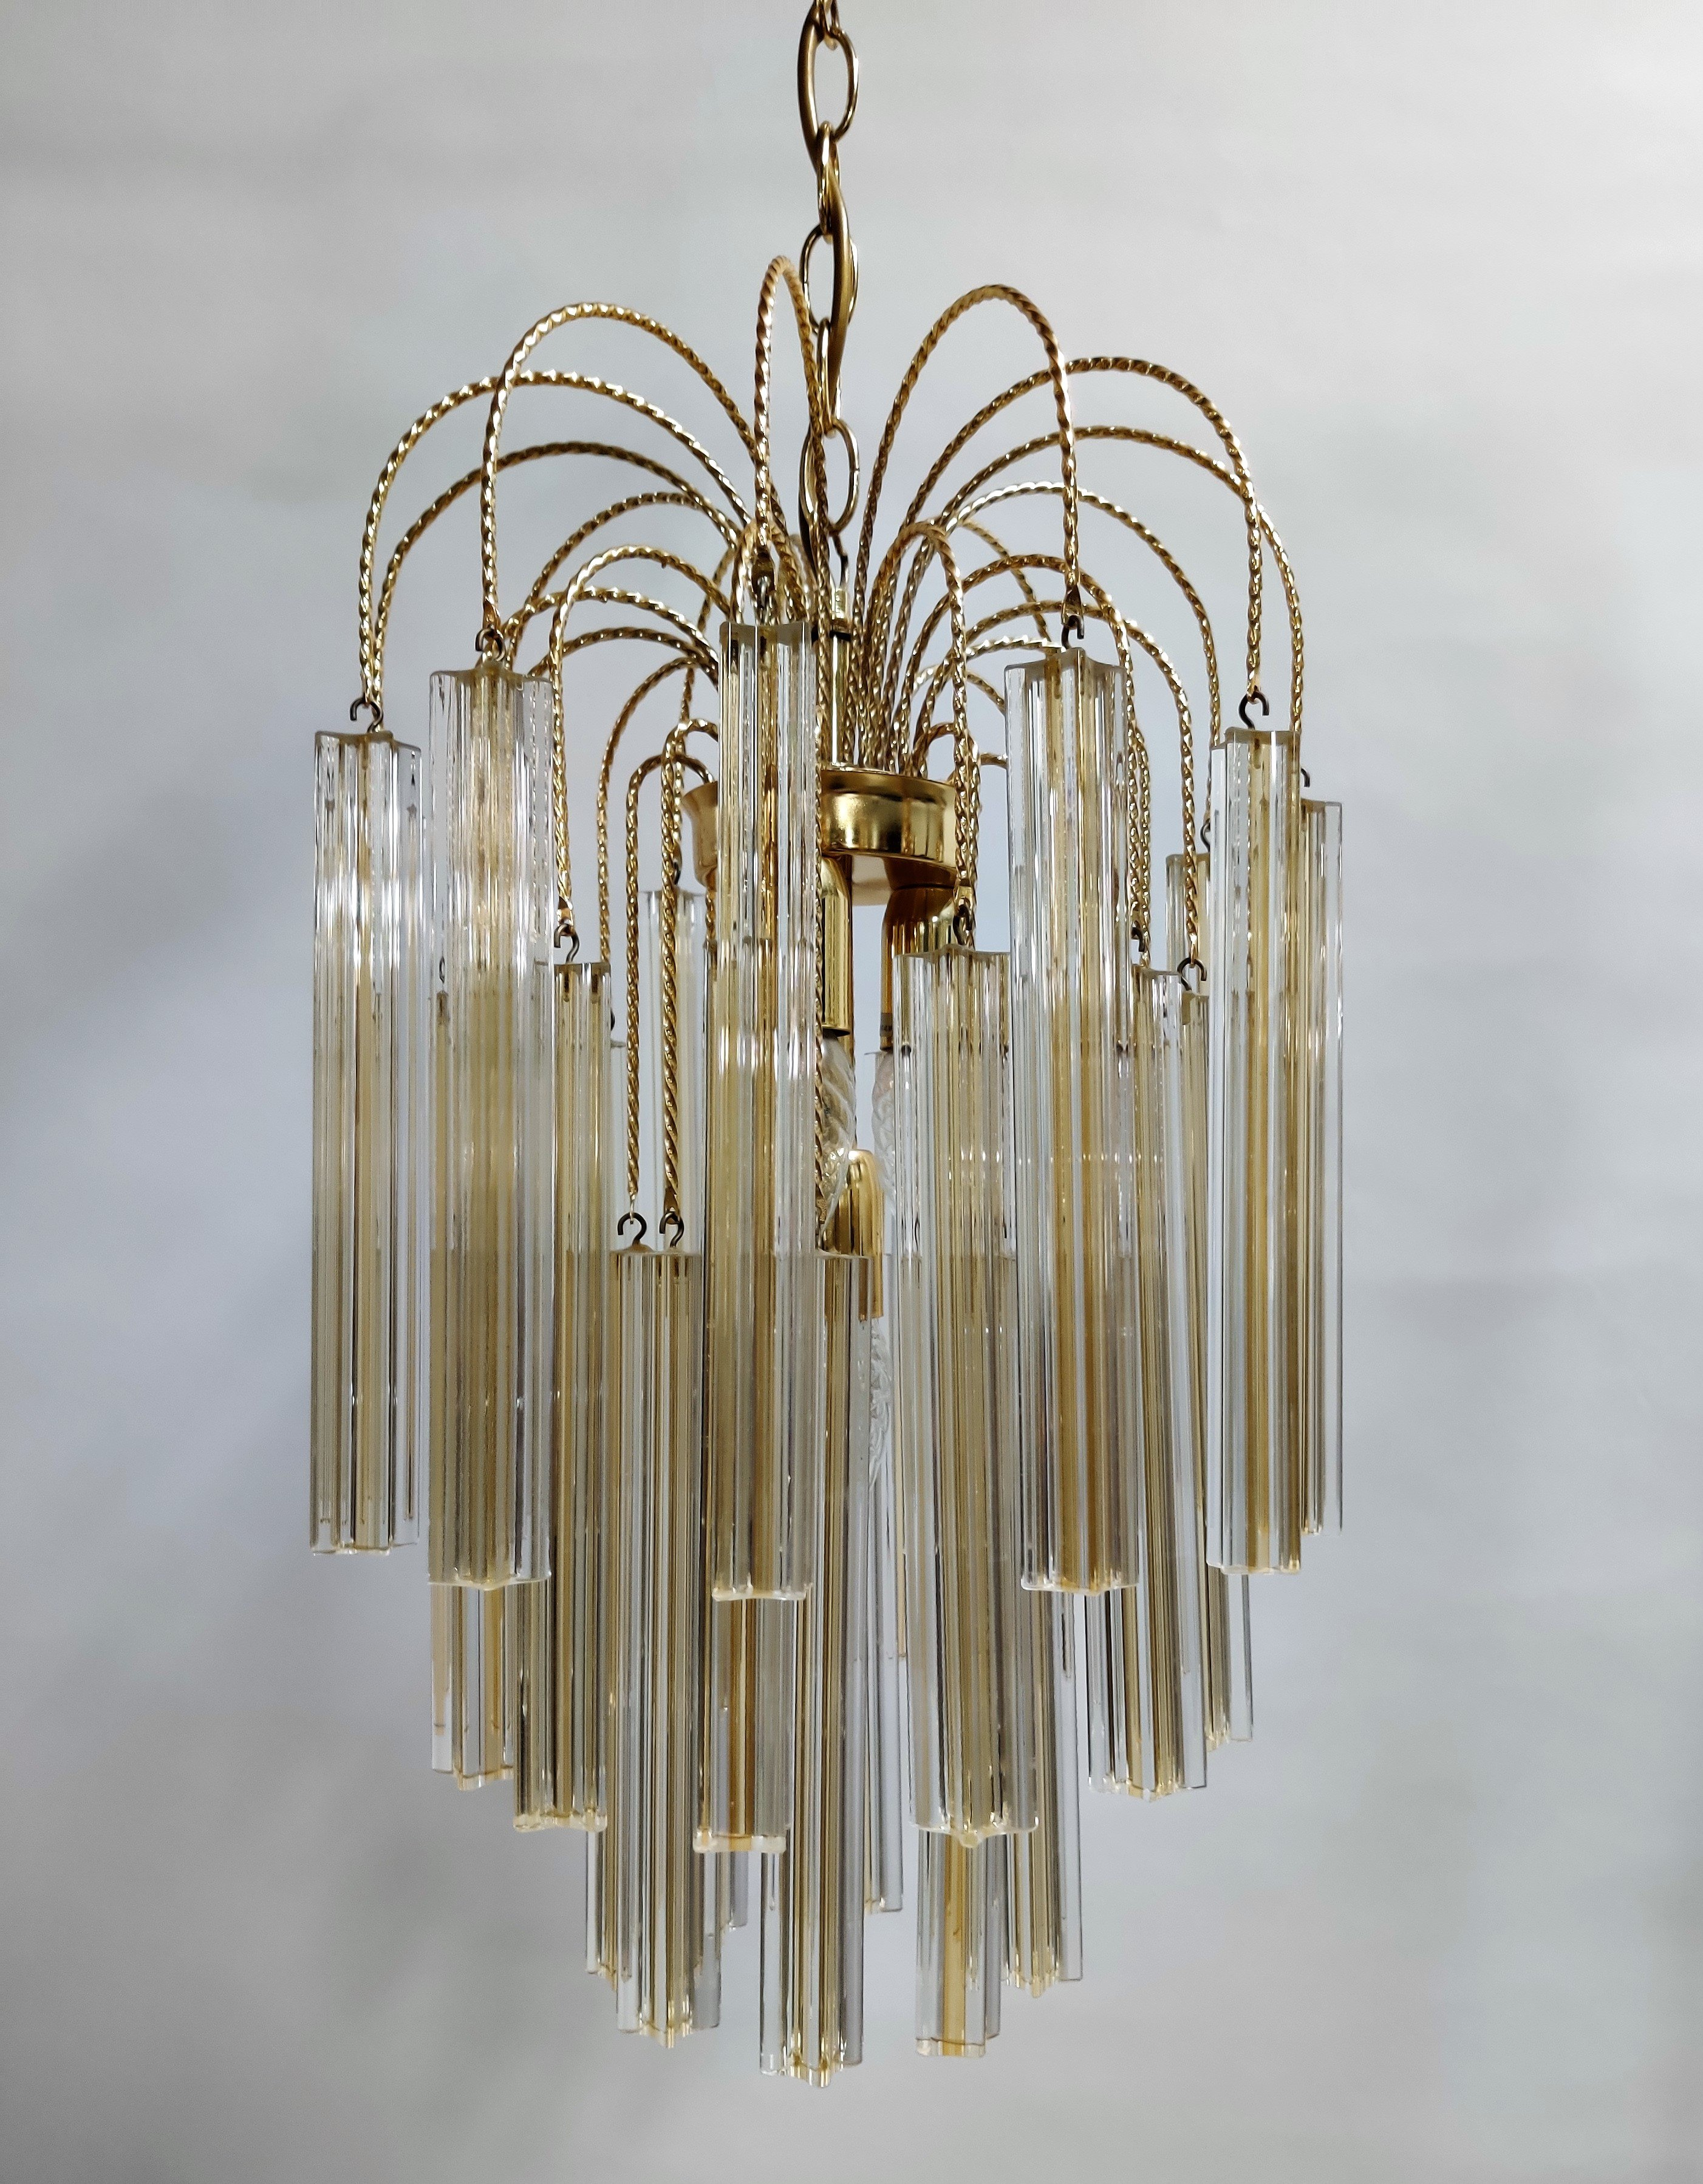 Image of: Midcentury White Yellow Crystal Chandelier By Paolo Venini 108777